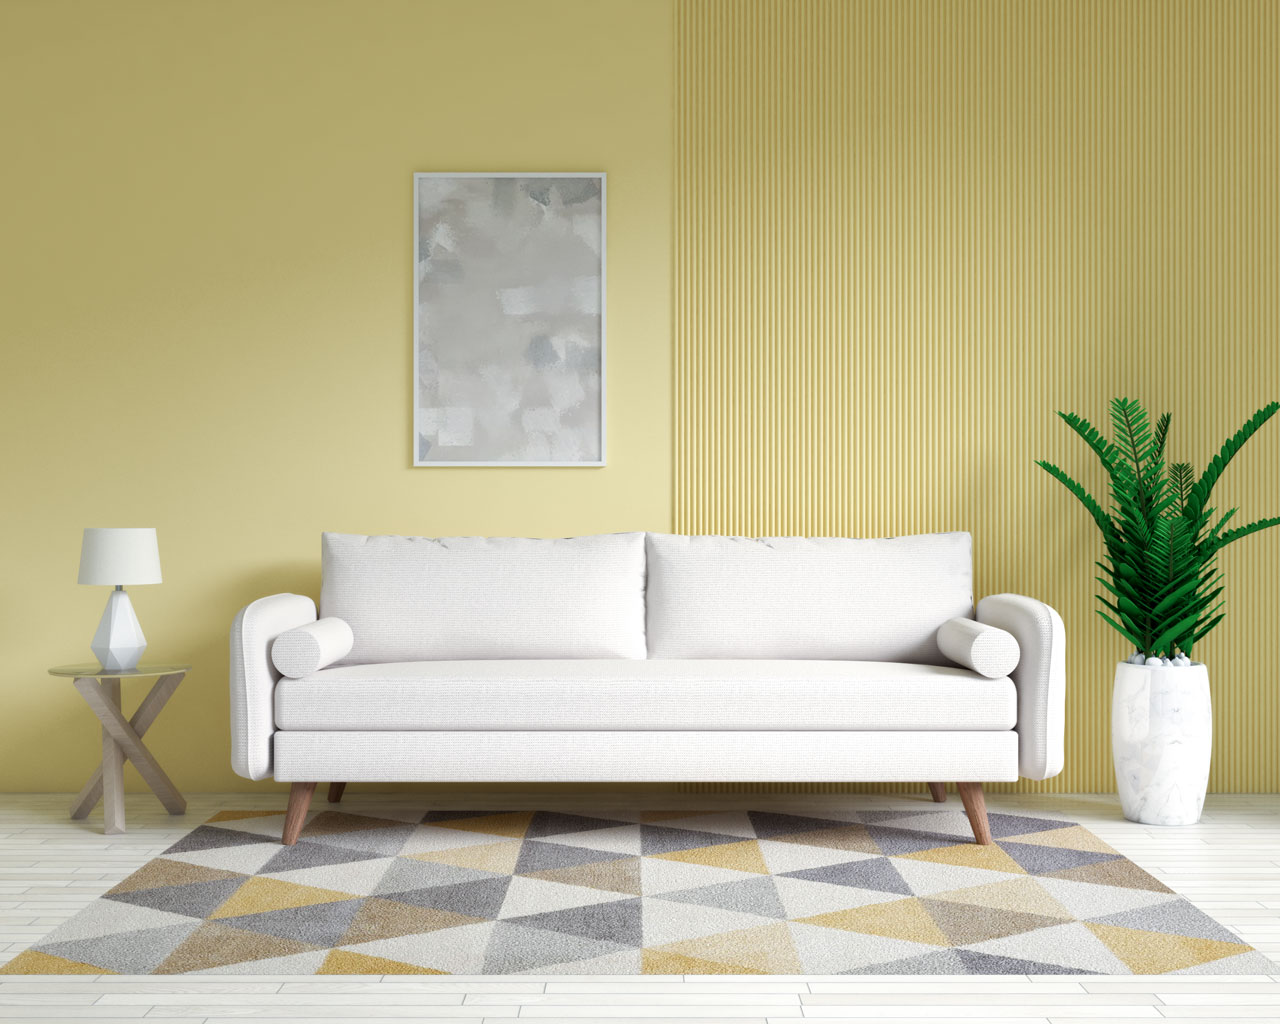 Beige couch with yellow accent wall